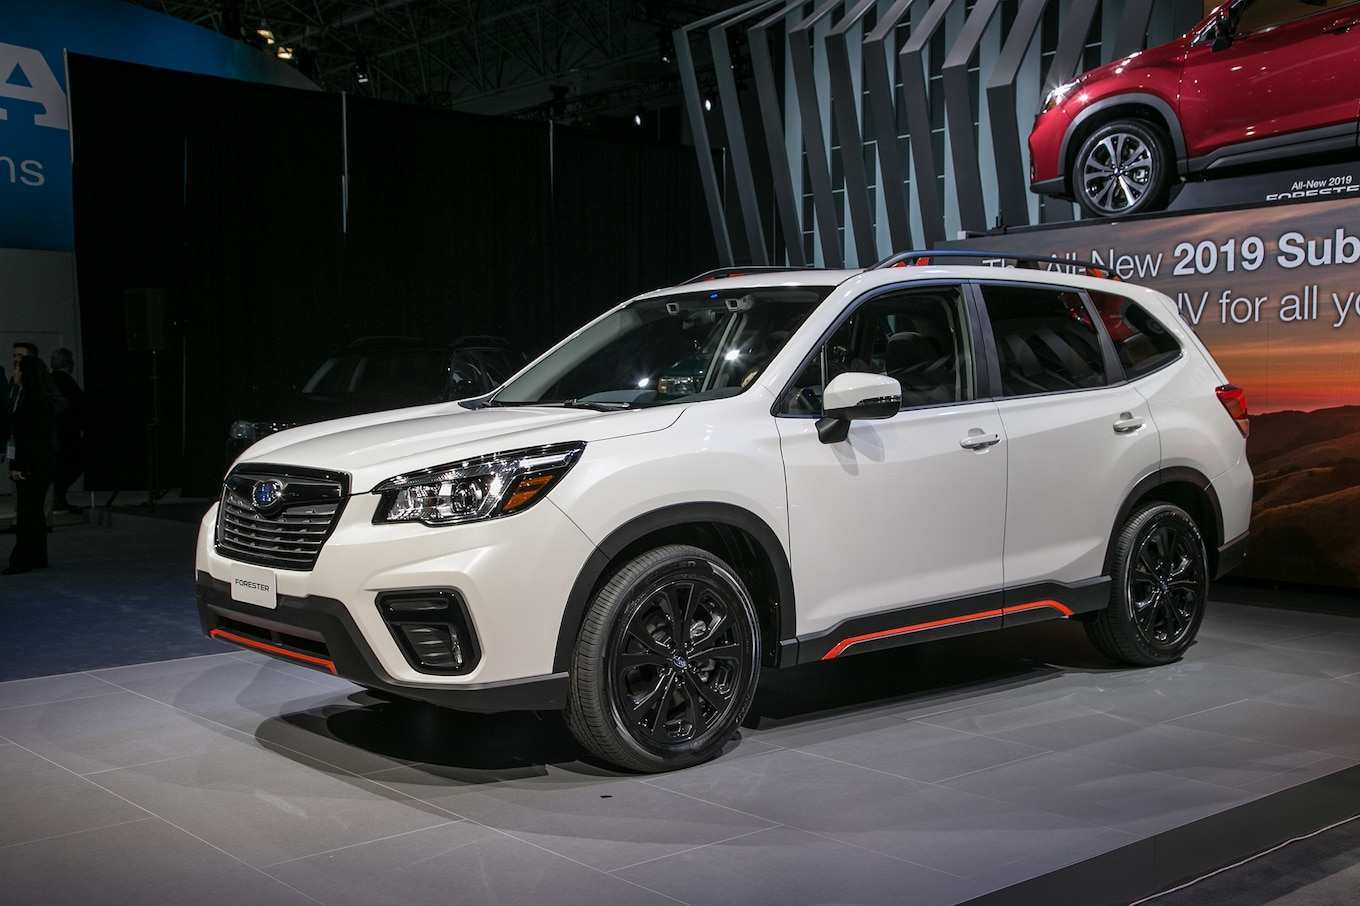 89 The Best Subaru 2019 Lease Exterior Pricing with Best Subaru 2019 Lease Exterior